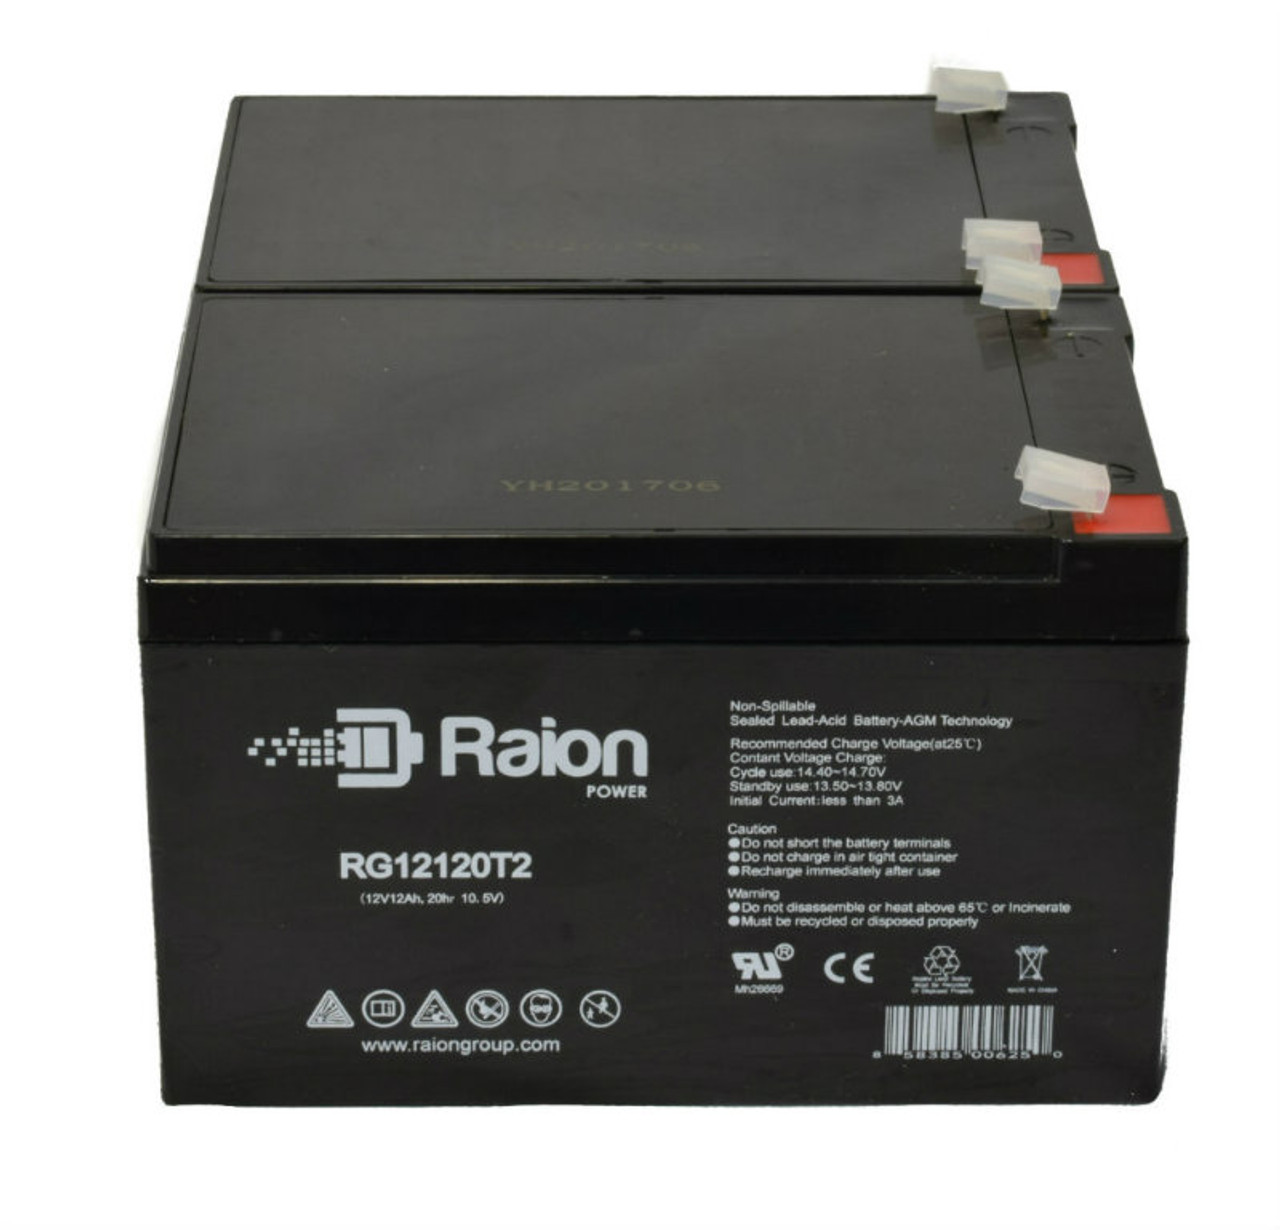 Raion Power RG12120T2 Replacement Battery Set for ActiveCare Medical Spitfire 1410 Mobility Scooter - 2 Pack